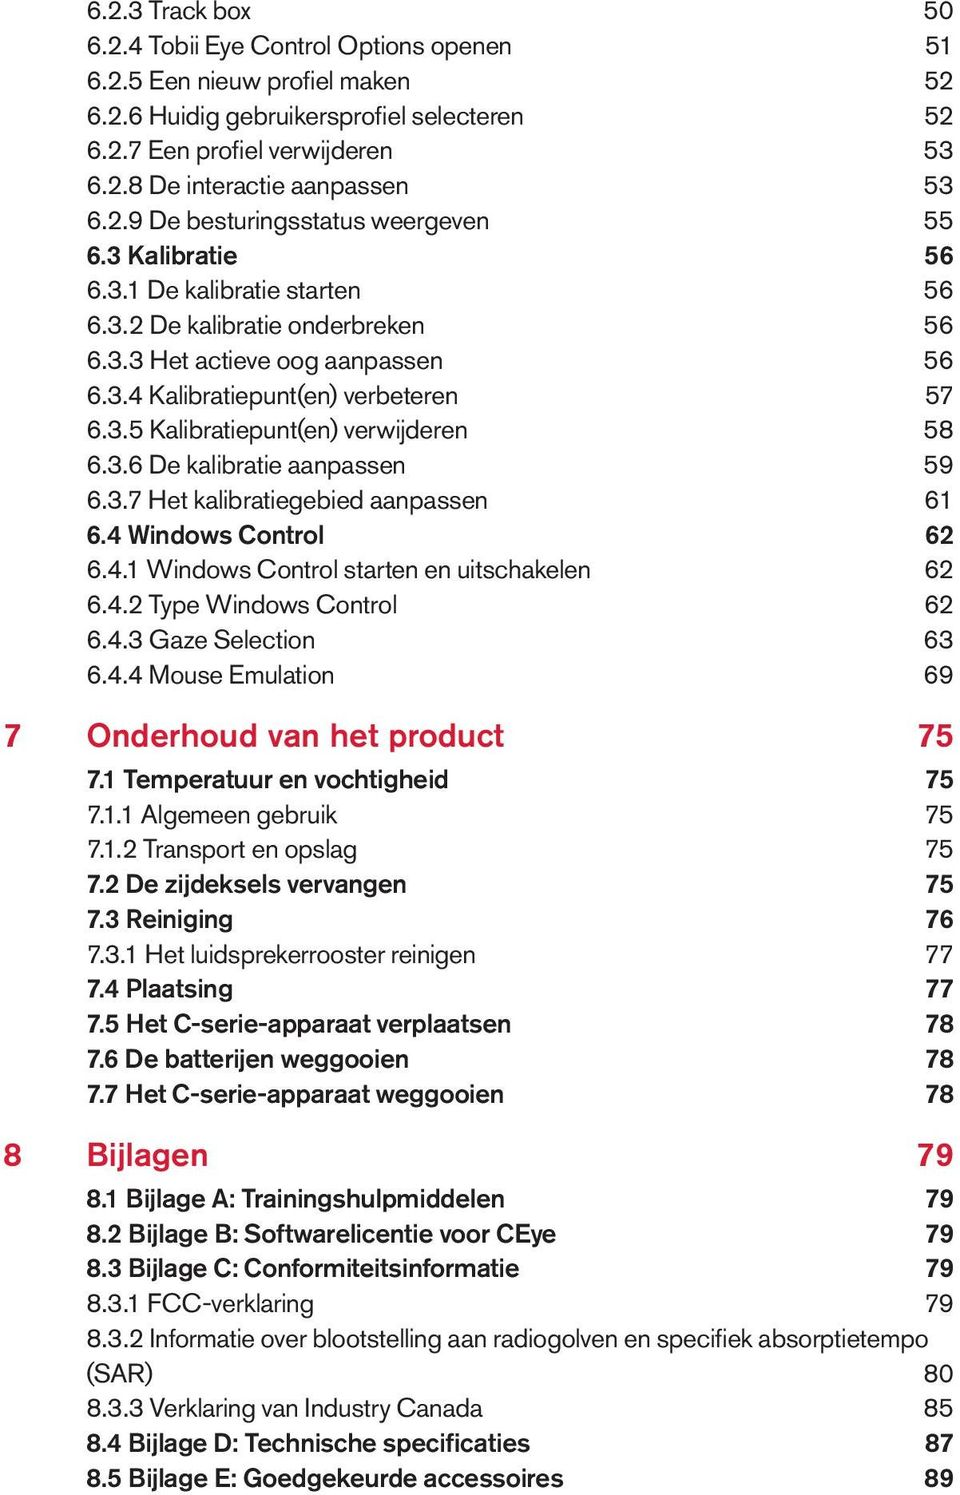 3.6 De kalibratie aanpassen 59 6.3.7 Het kalibratiegebied aanpassen 61 6.4 Windows Control 62 6.4.1 Windows Control starten en uitschakelen 62 6.4.2 Type Windows Control 62 6.4.3 Gaze Selection 63 6.